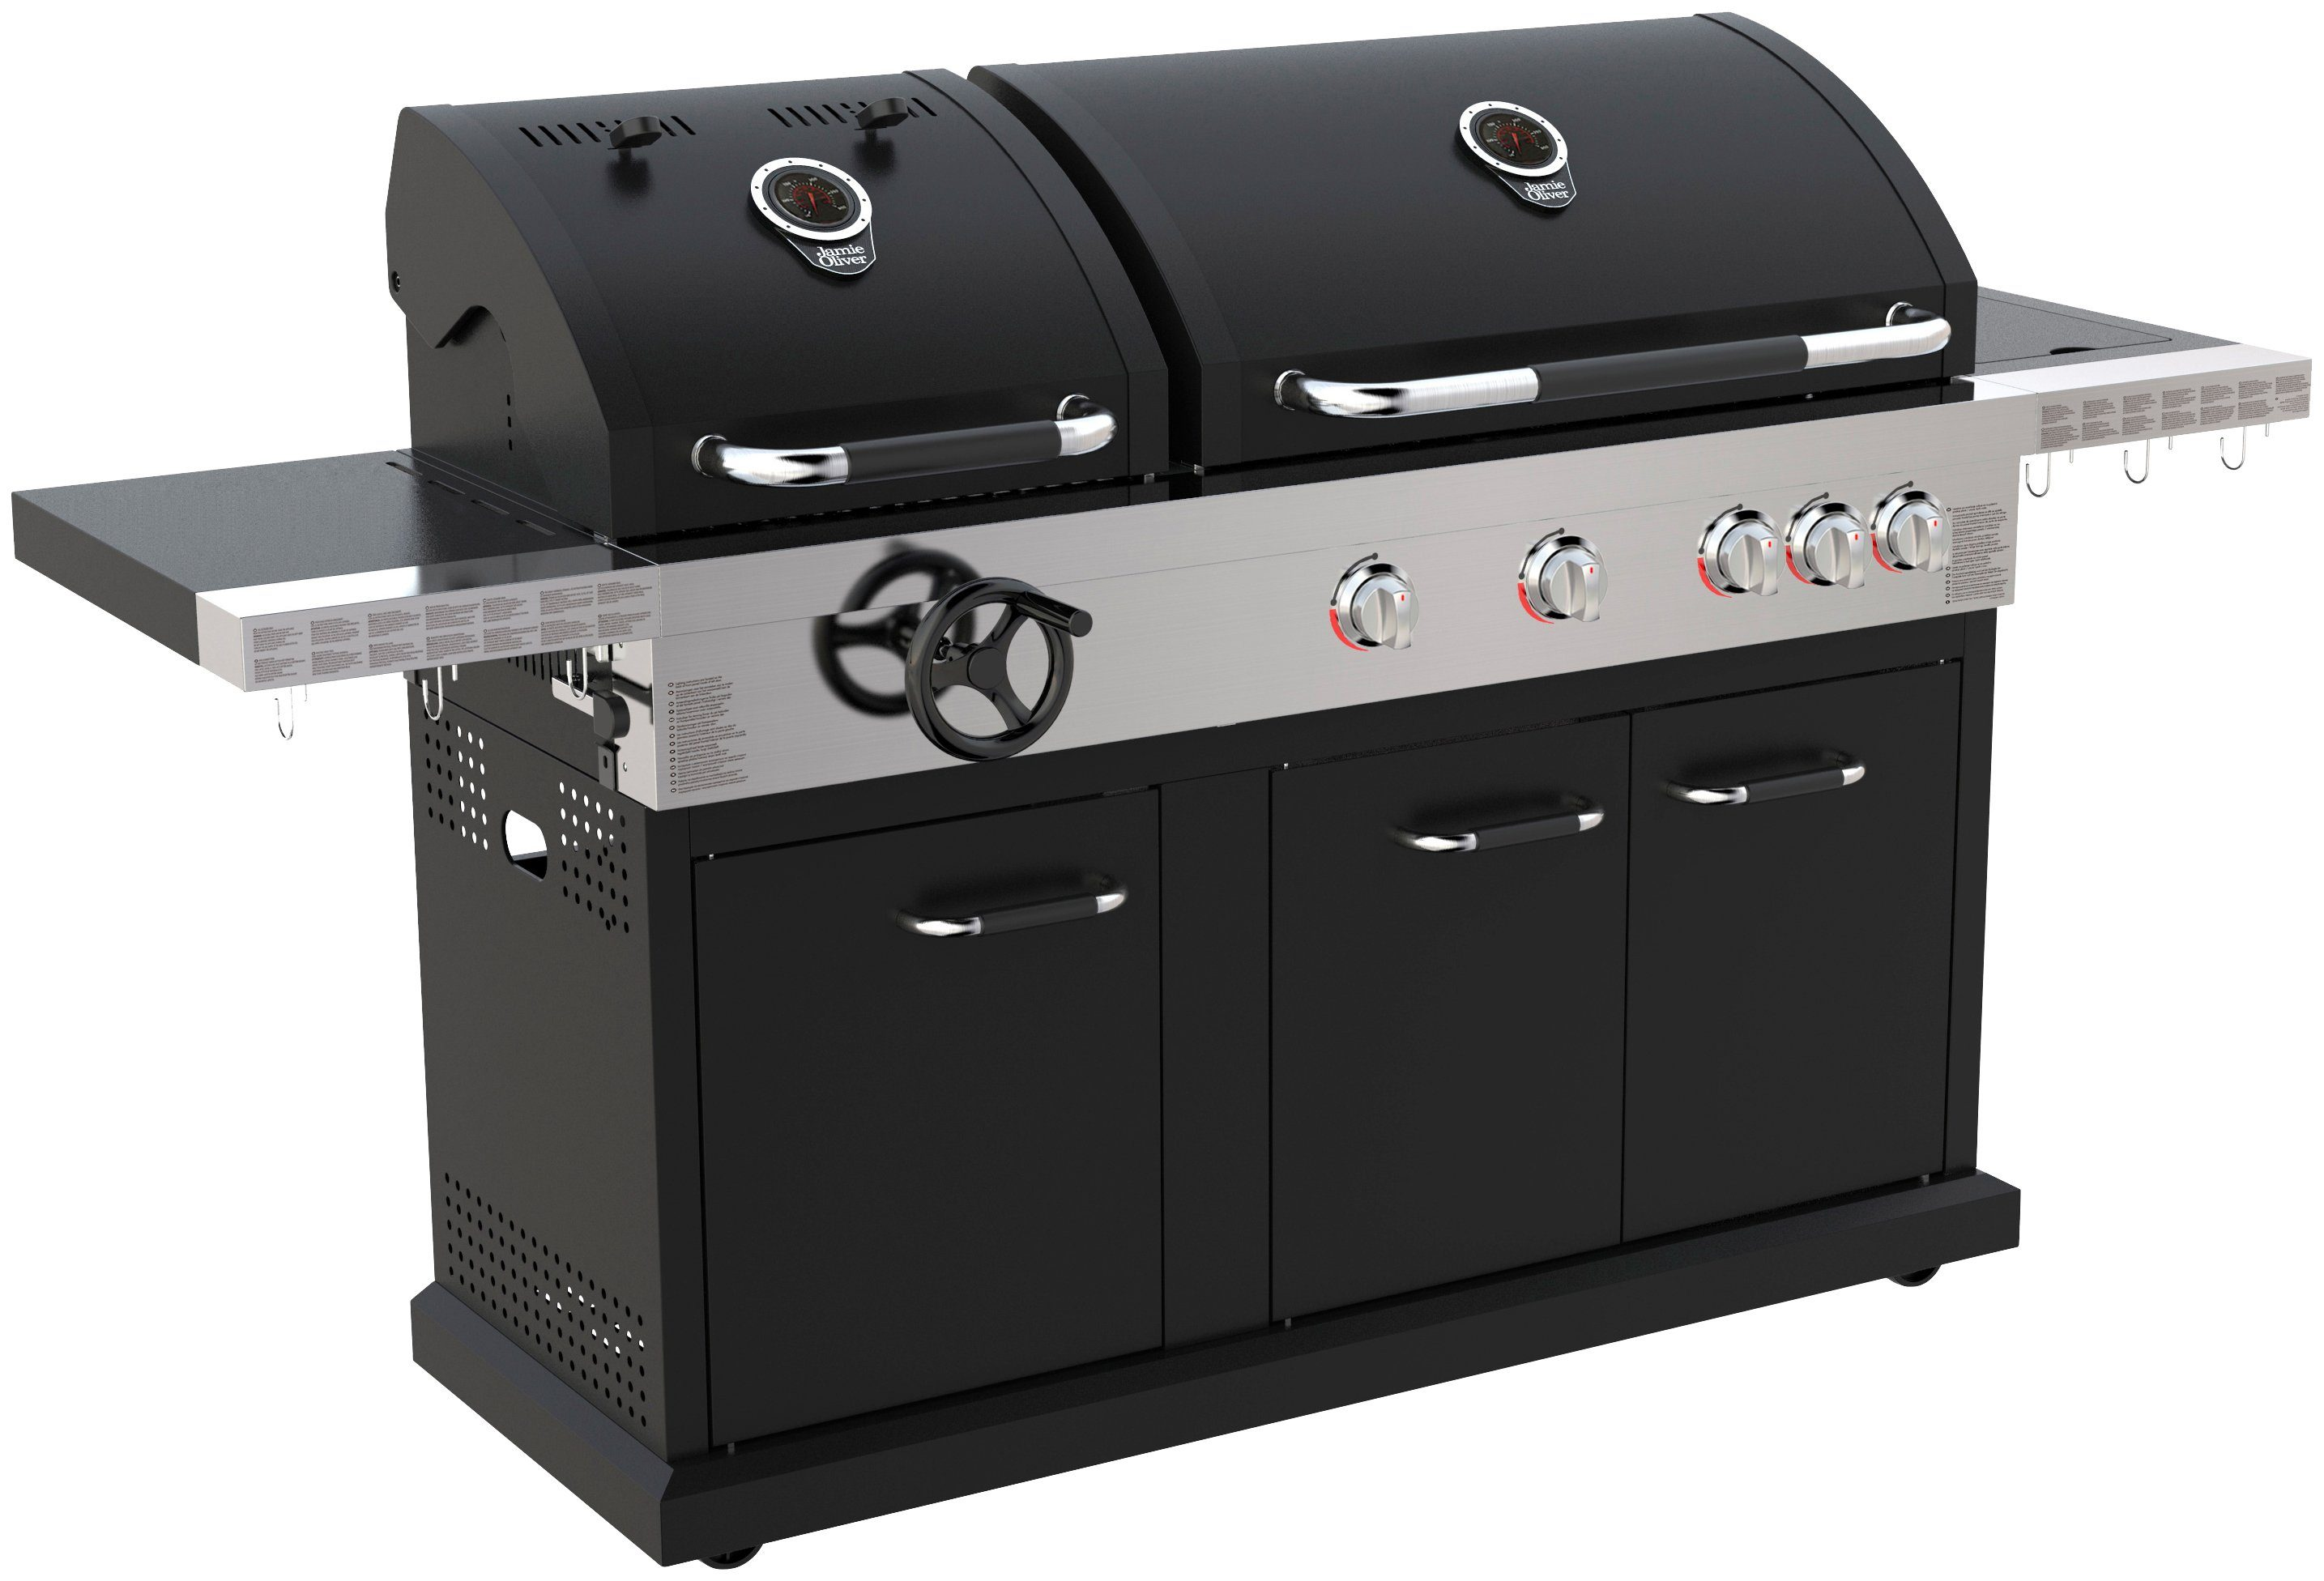 JAMIE OLIVER Gasgrill »BBQ Dual Fuel Pro 4«, Gas- und Holzkohlekombination, BxTxH: 213x60x122 cm